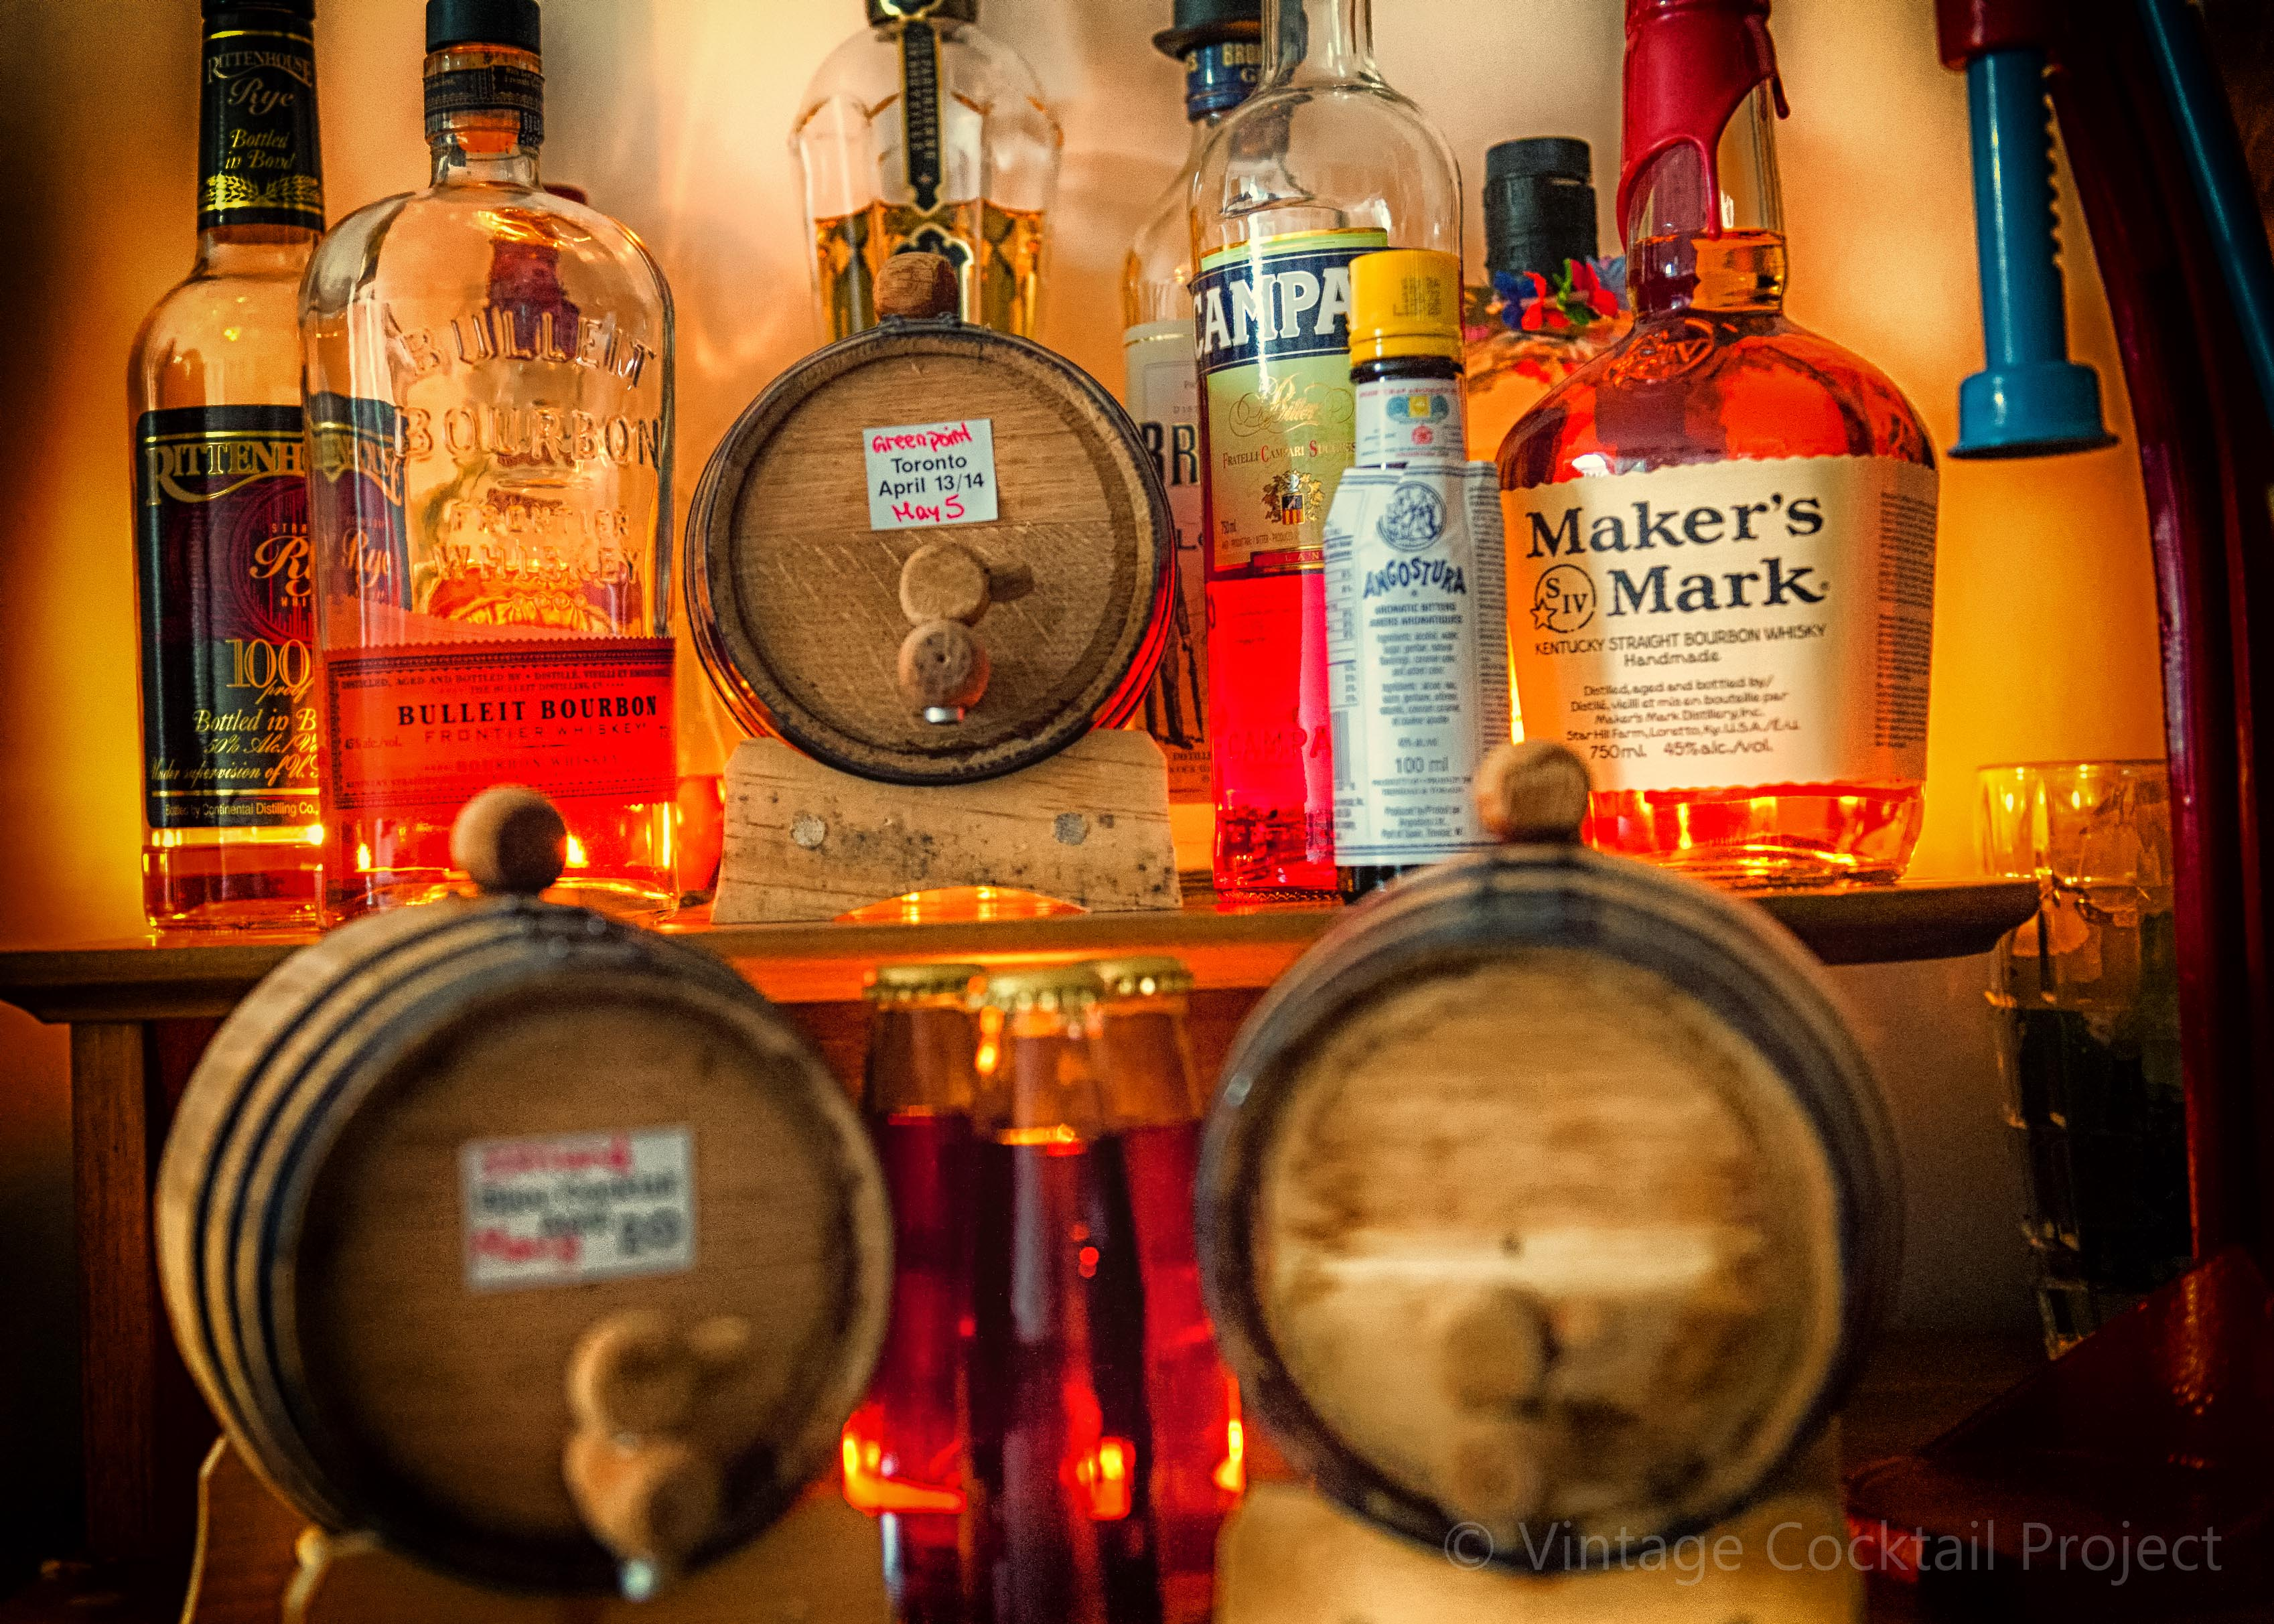 Booze Bottle and Barrels, a sight for thirsty eye